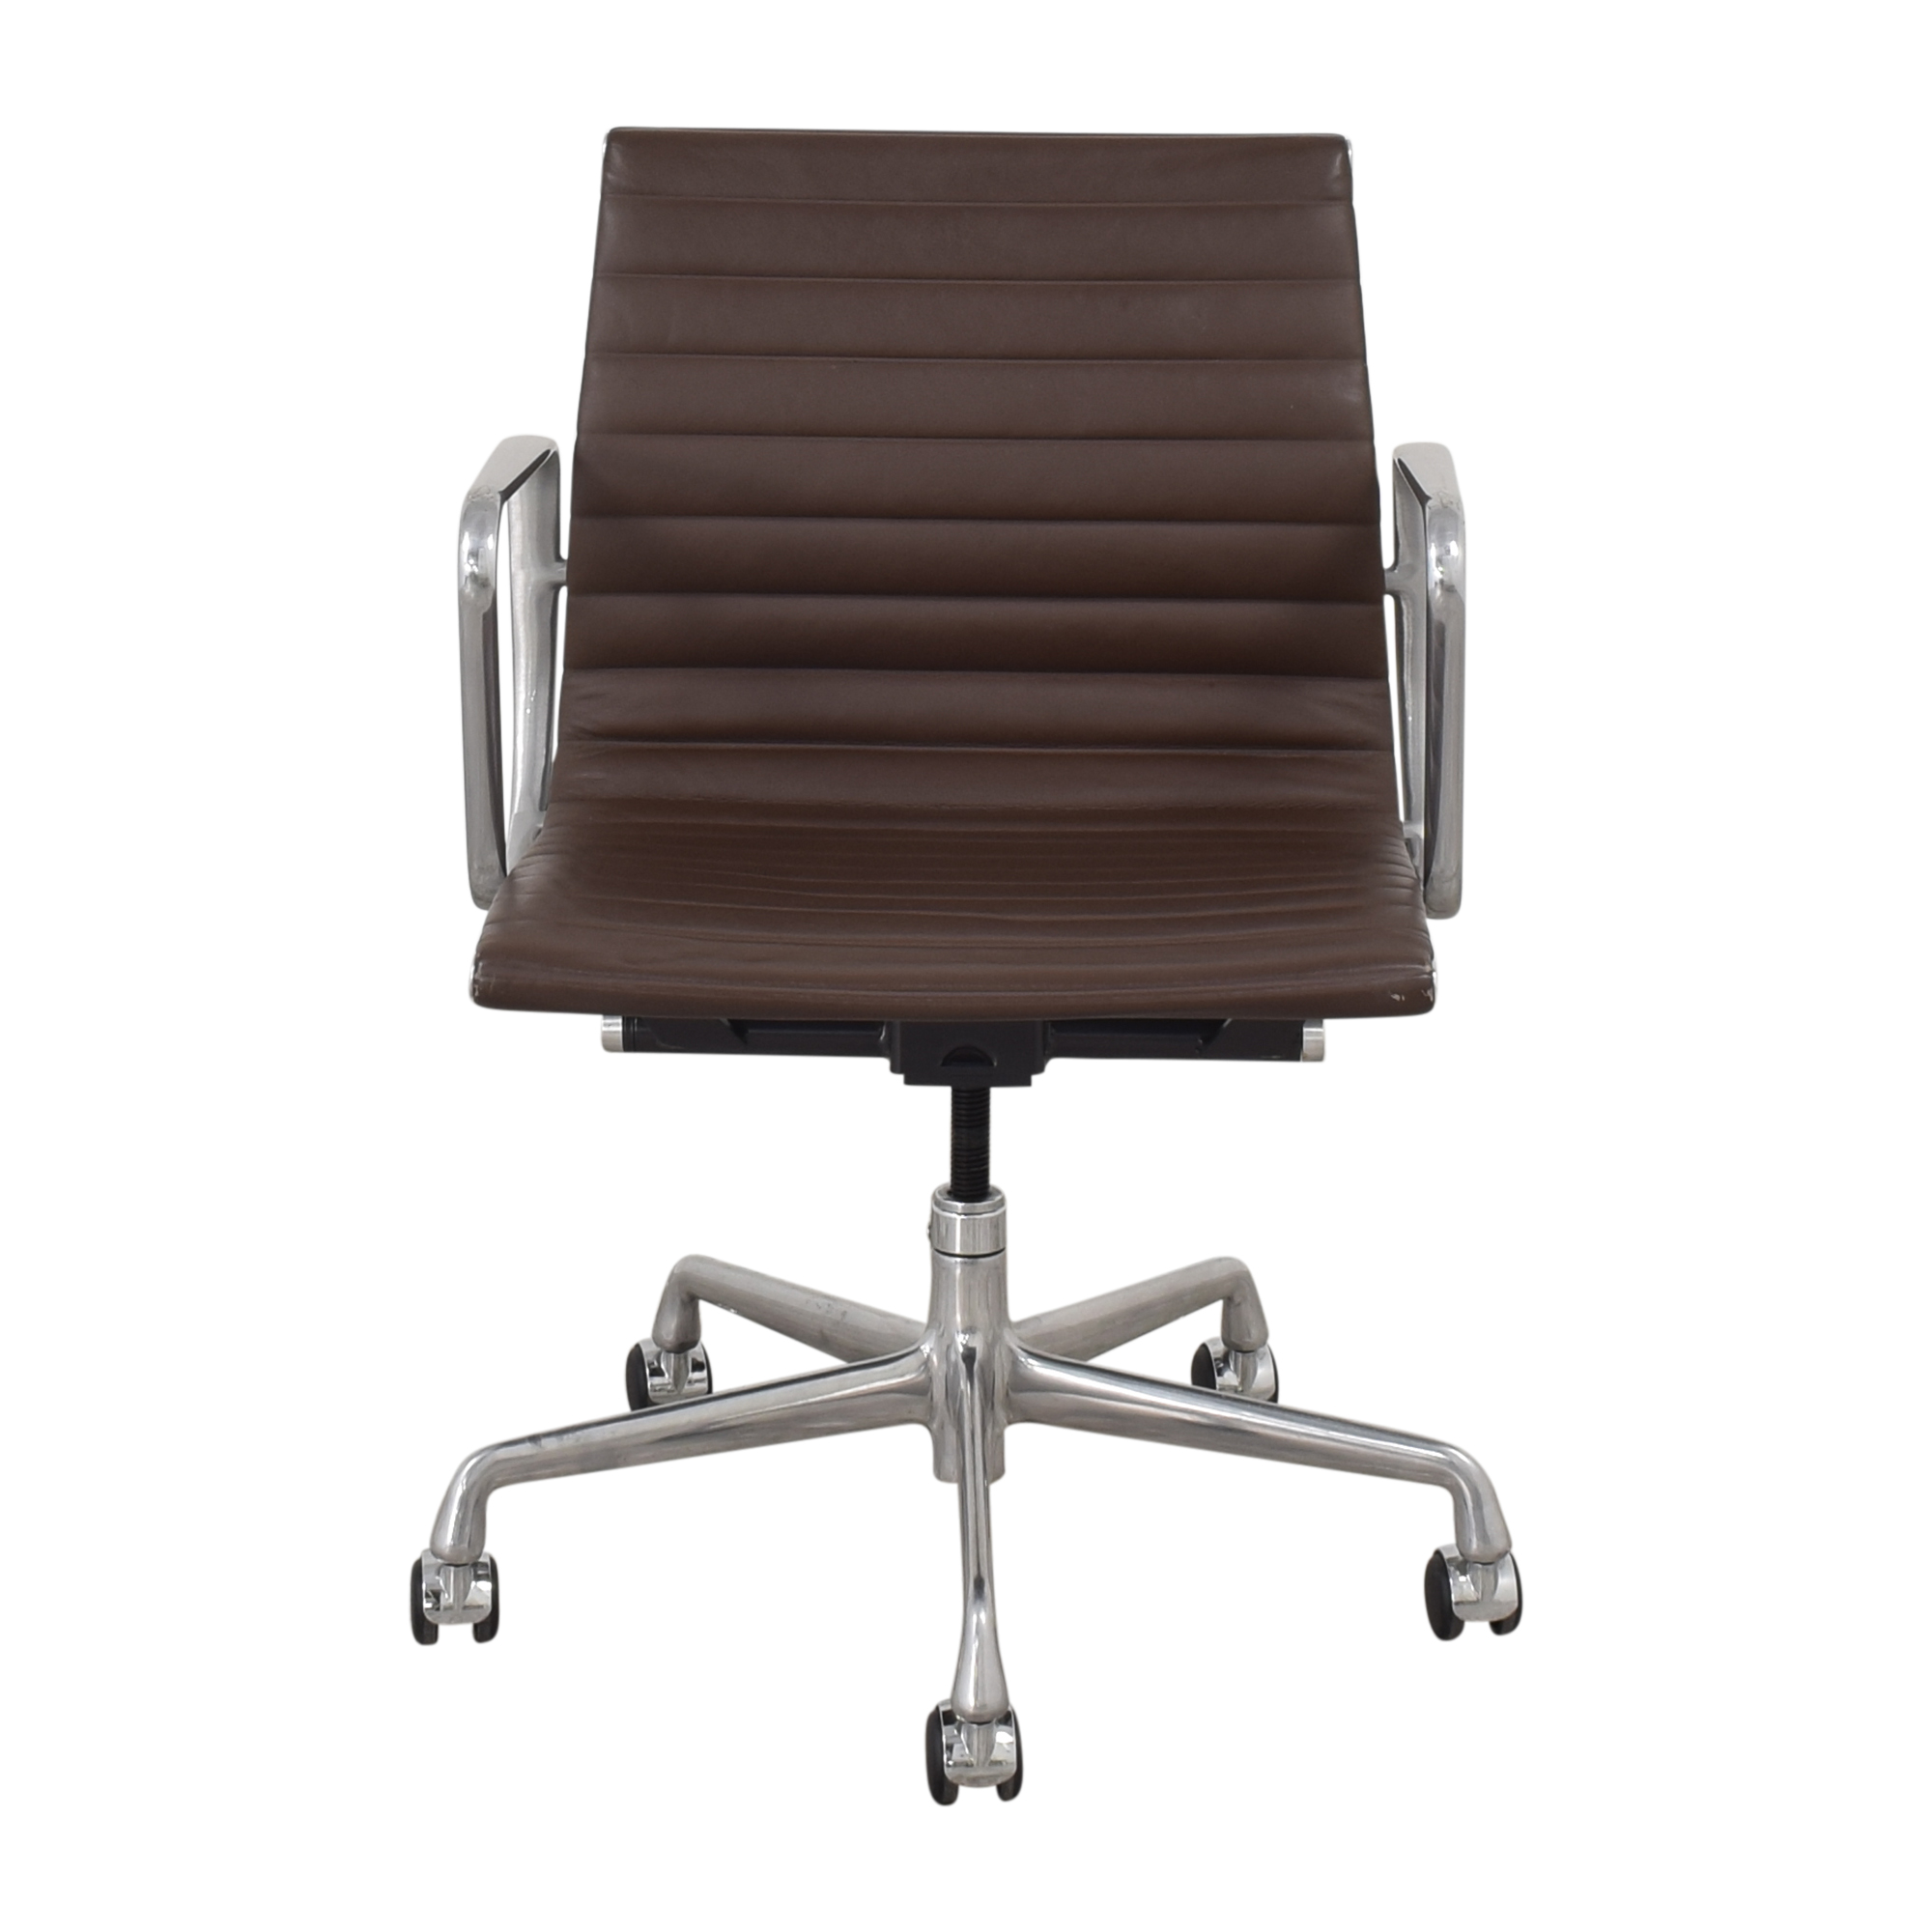 Herman Miller Herman Miller Eames Aluminum Group Management Chair price